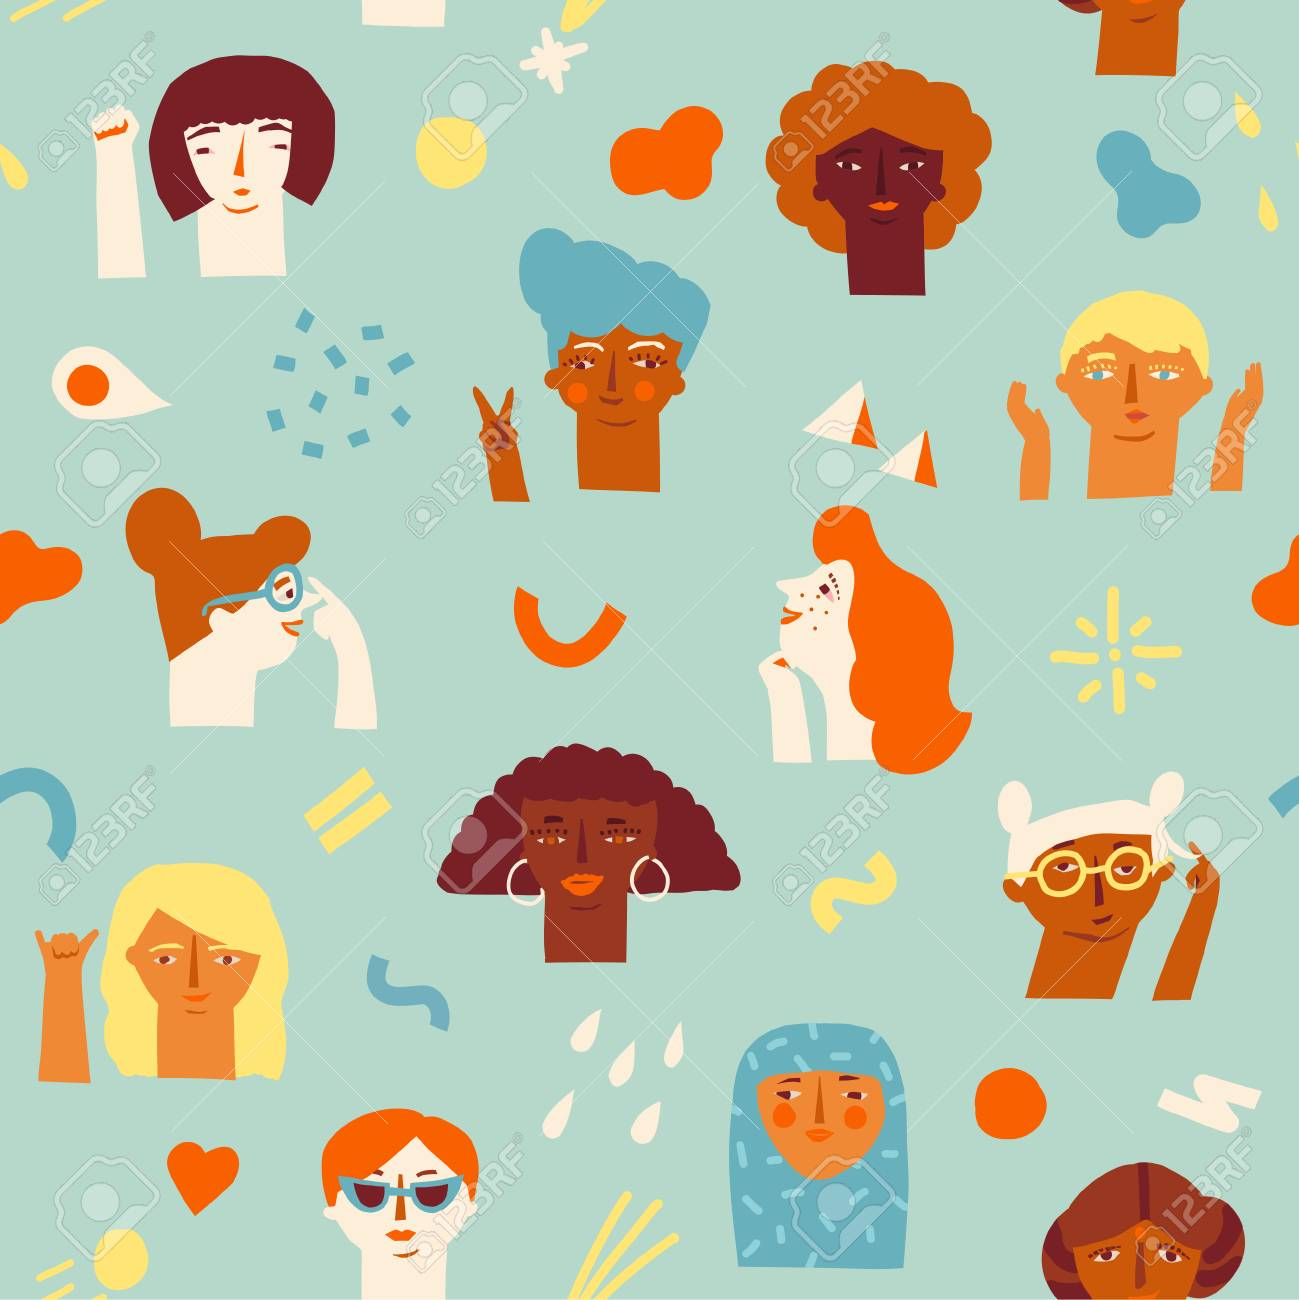 A woman empowerment ideas seamless pattern icon isolated on plain background. - 96850455